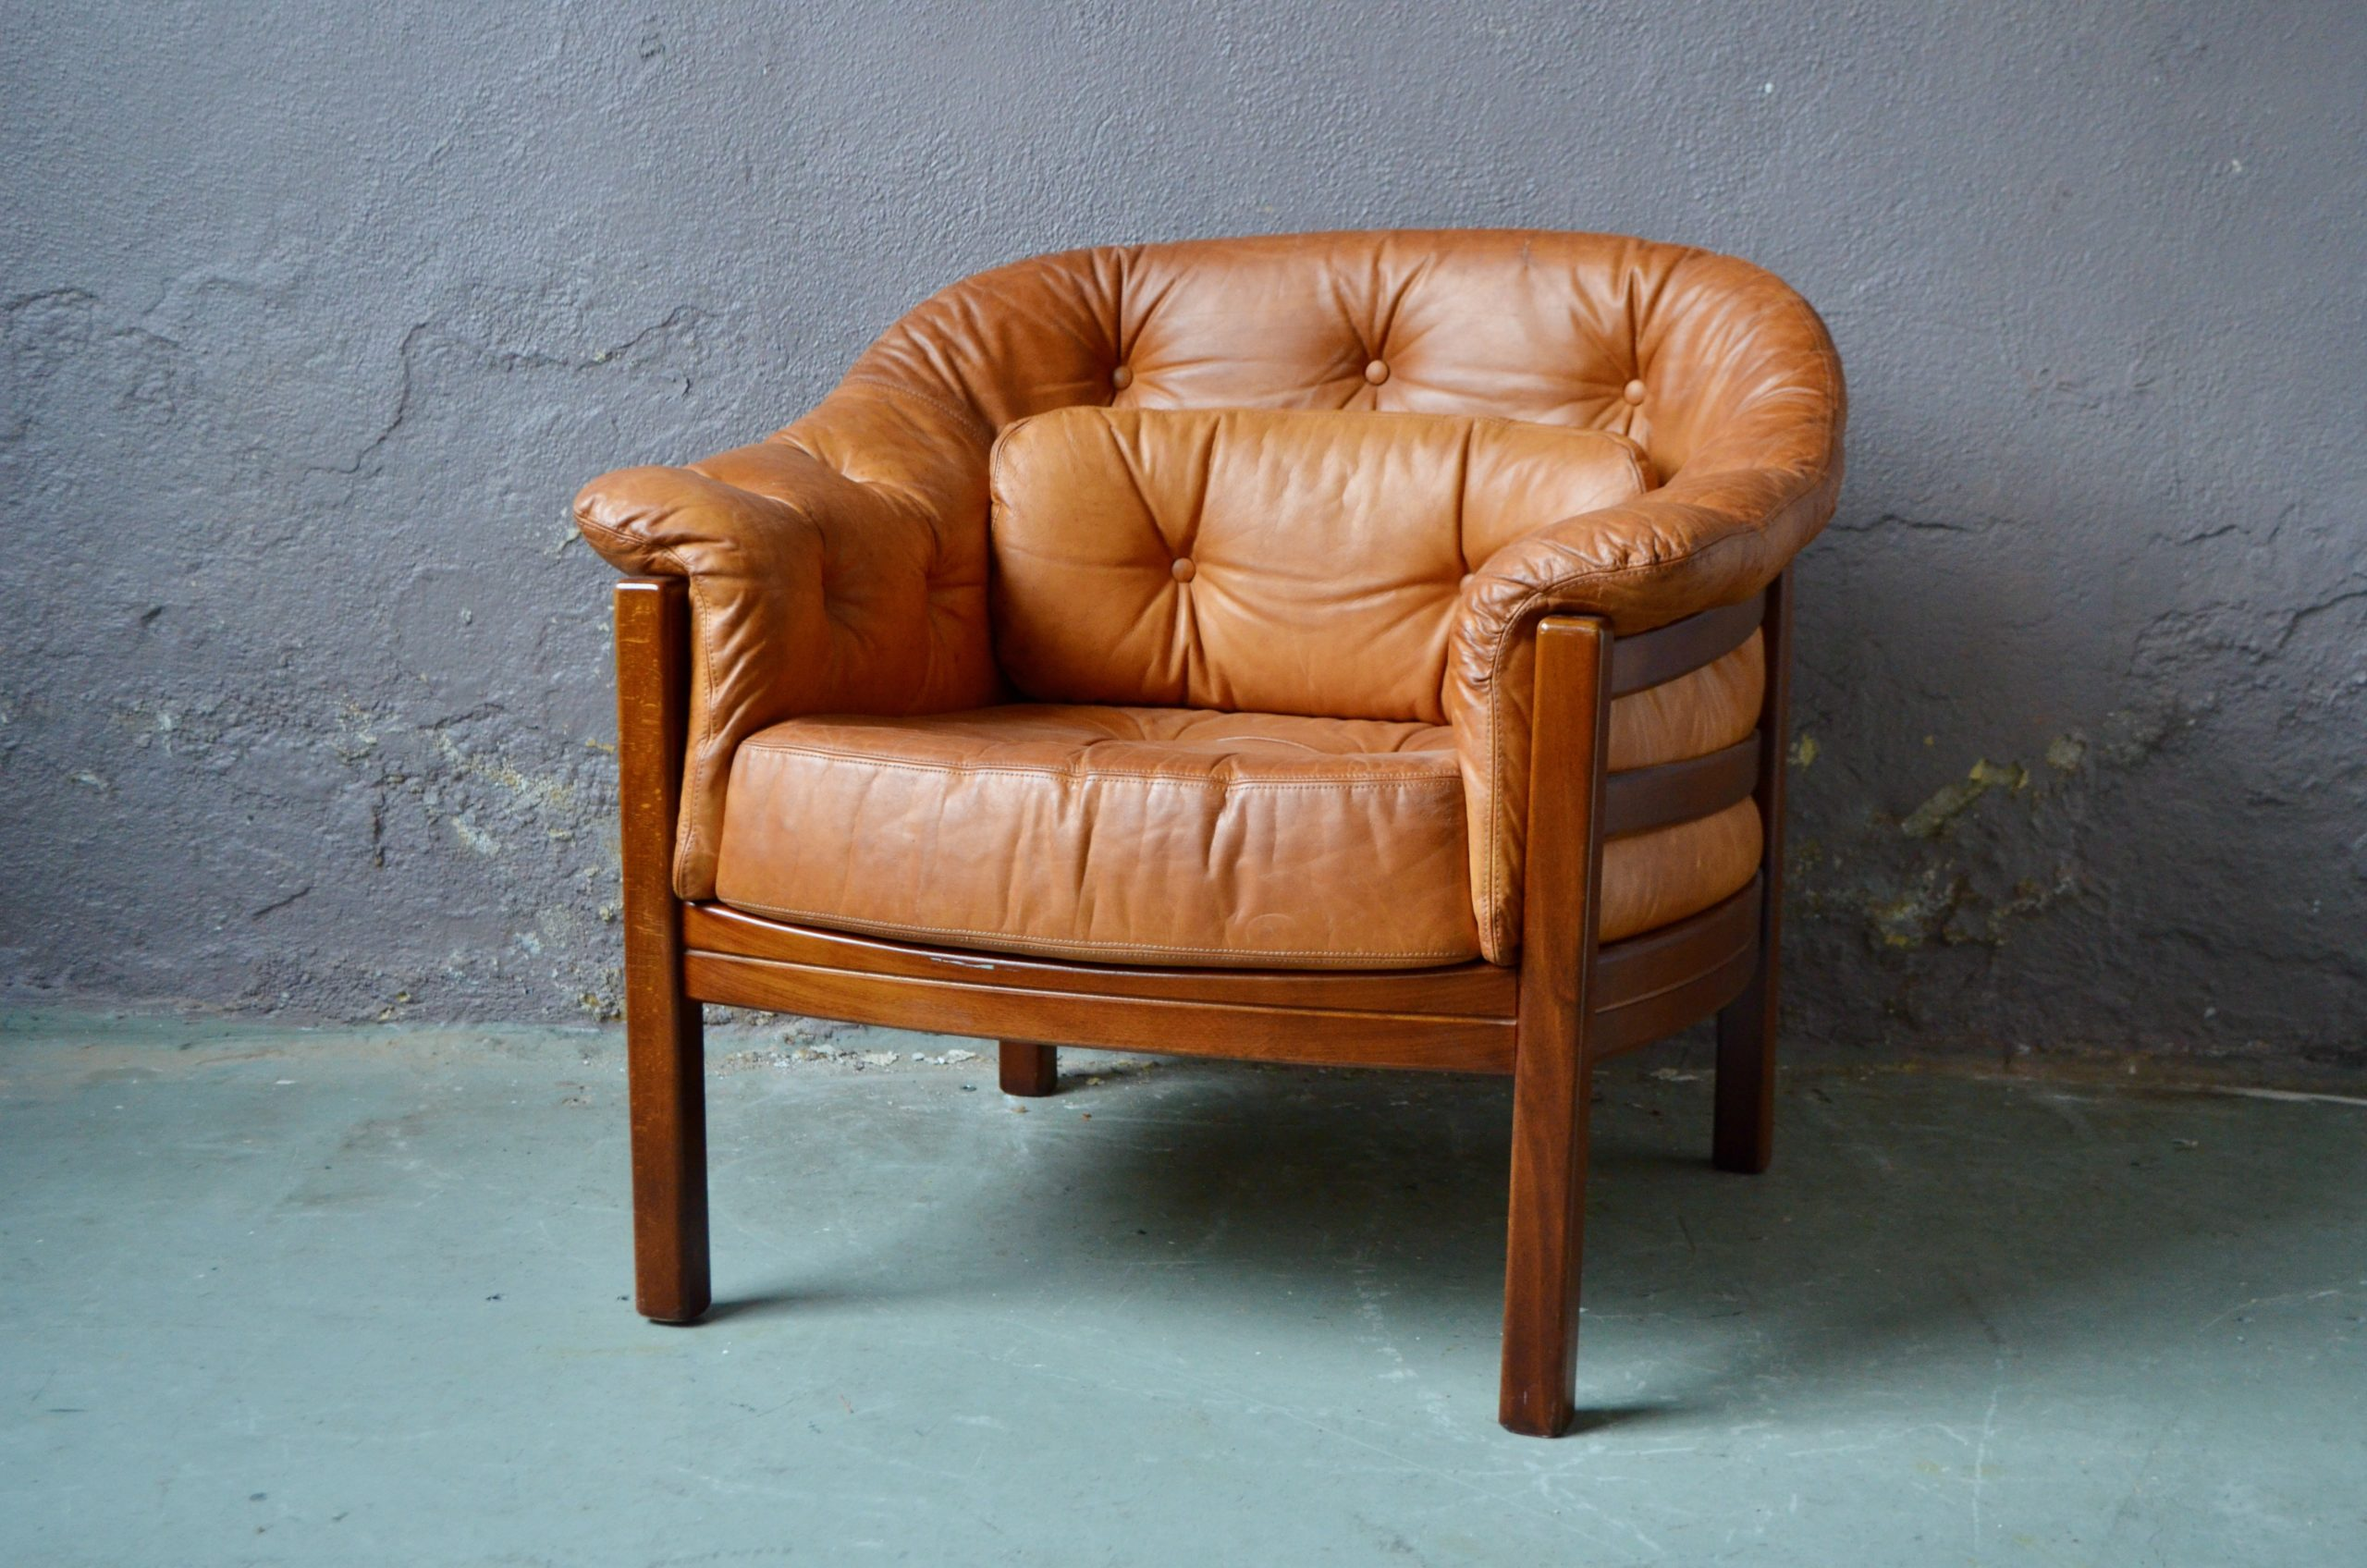 Fauteuil club chesterfield scandinave ancien